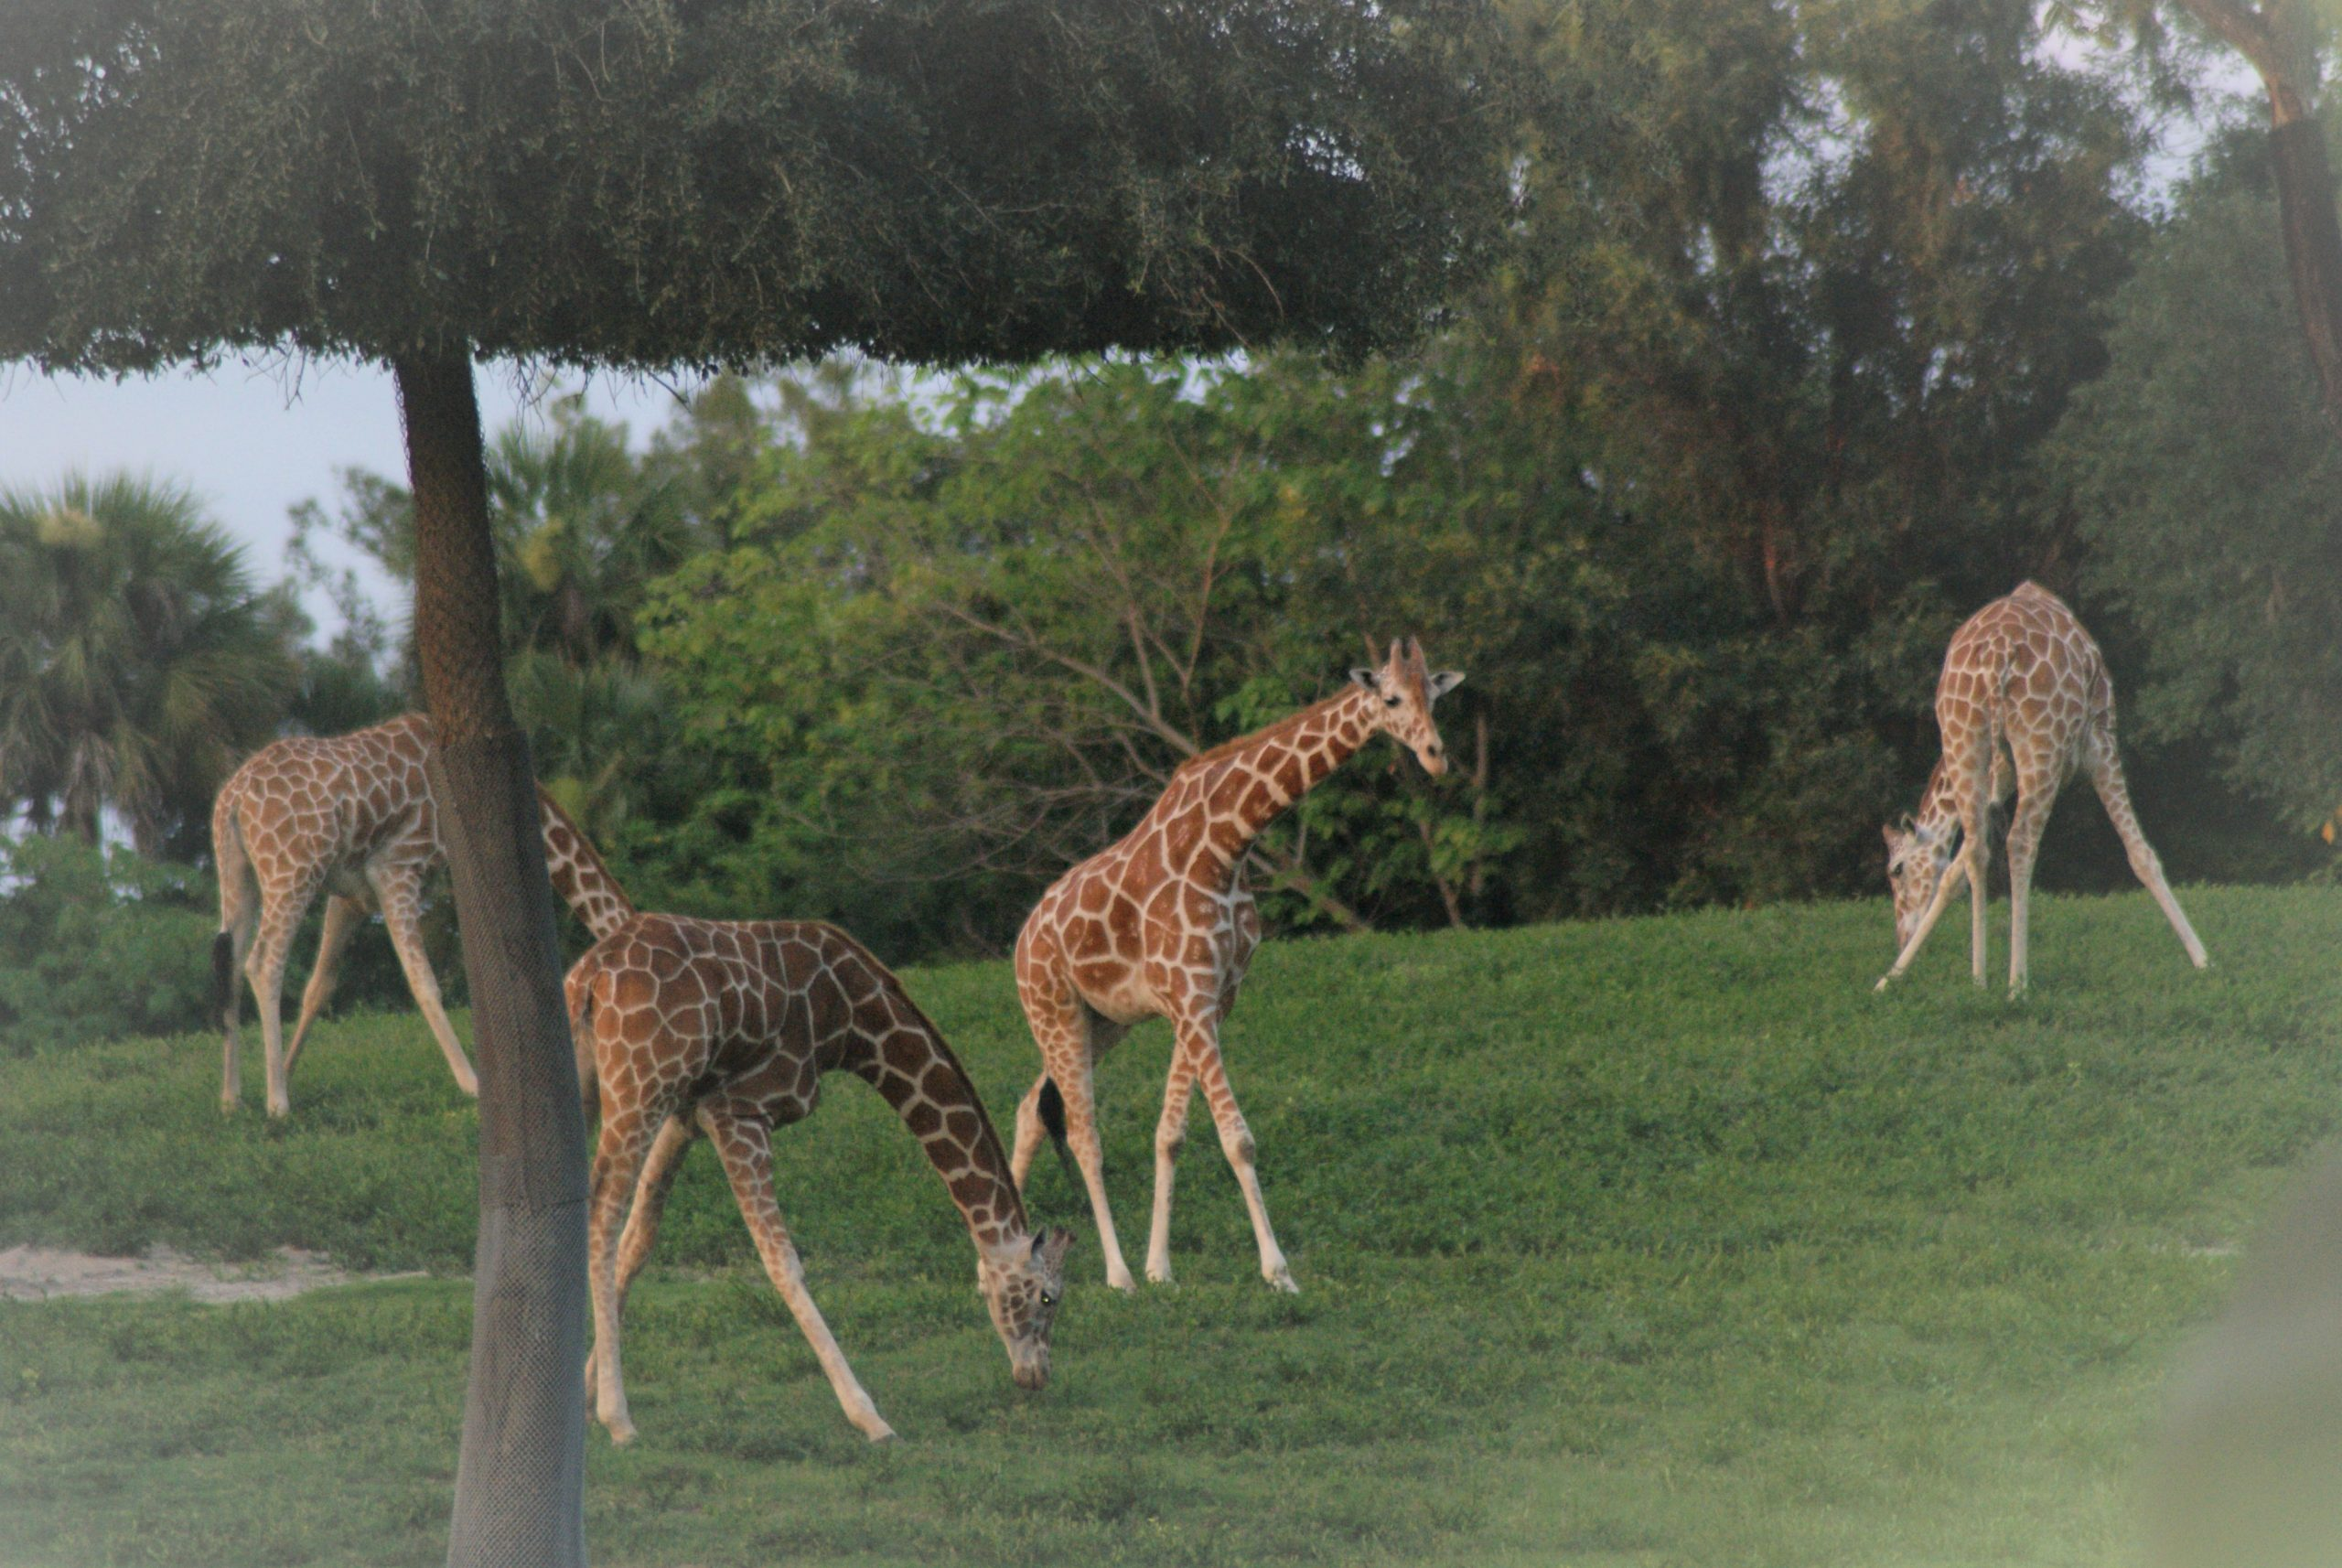 LEARNING FROM GIRAFFES: Be social (Part 2 of 5)